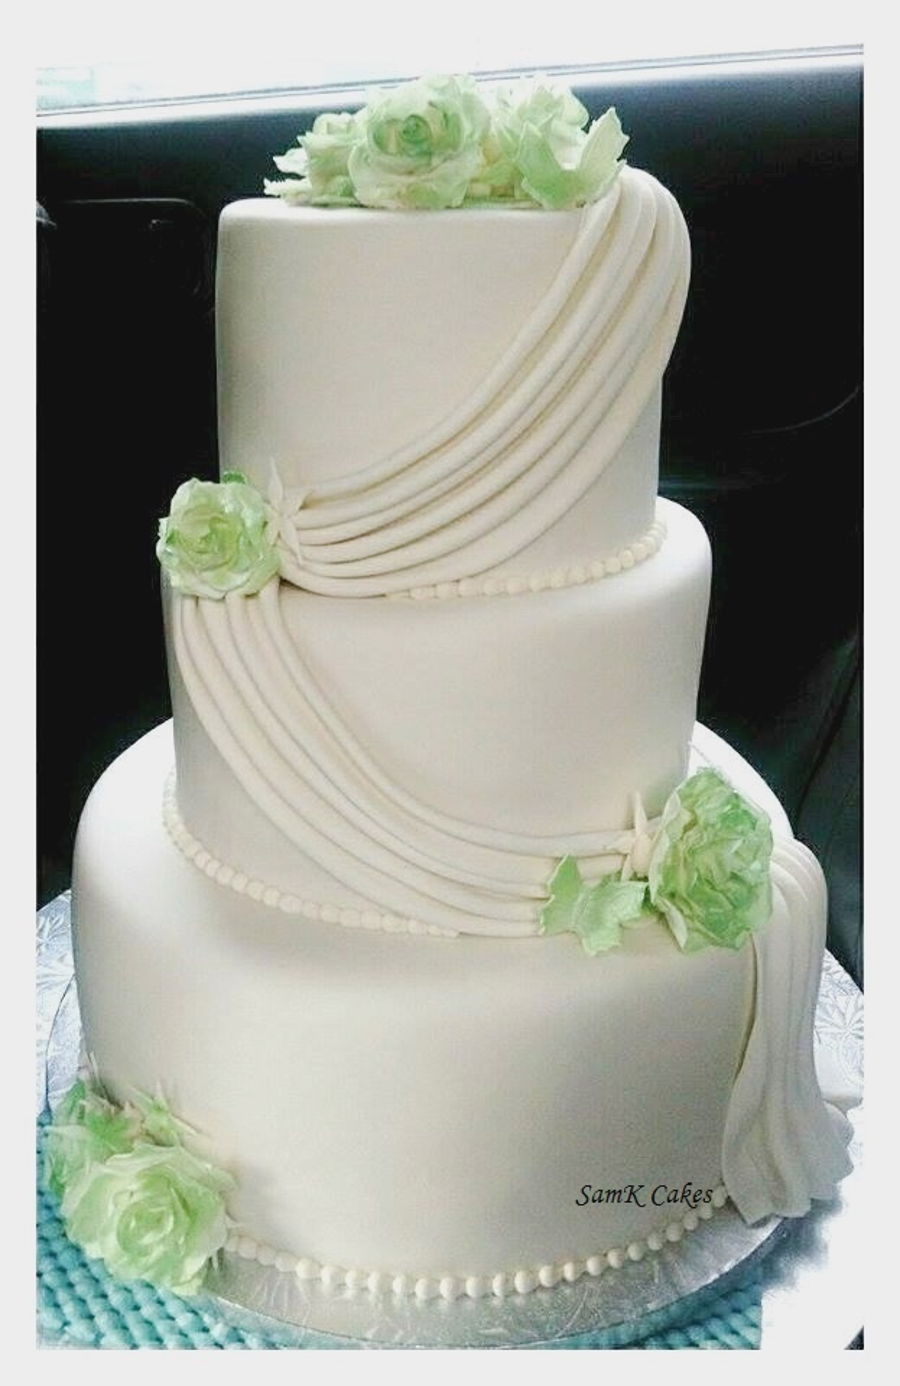 Simple 3 Tiered Wedding Cakes  Simple Elegant 3 Tier White And Green Wedding Cake